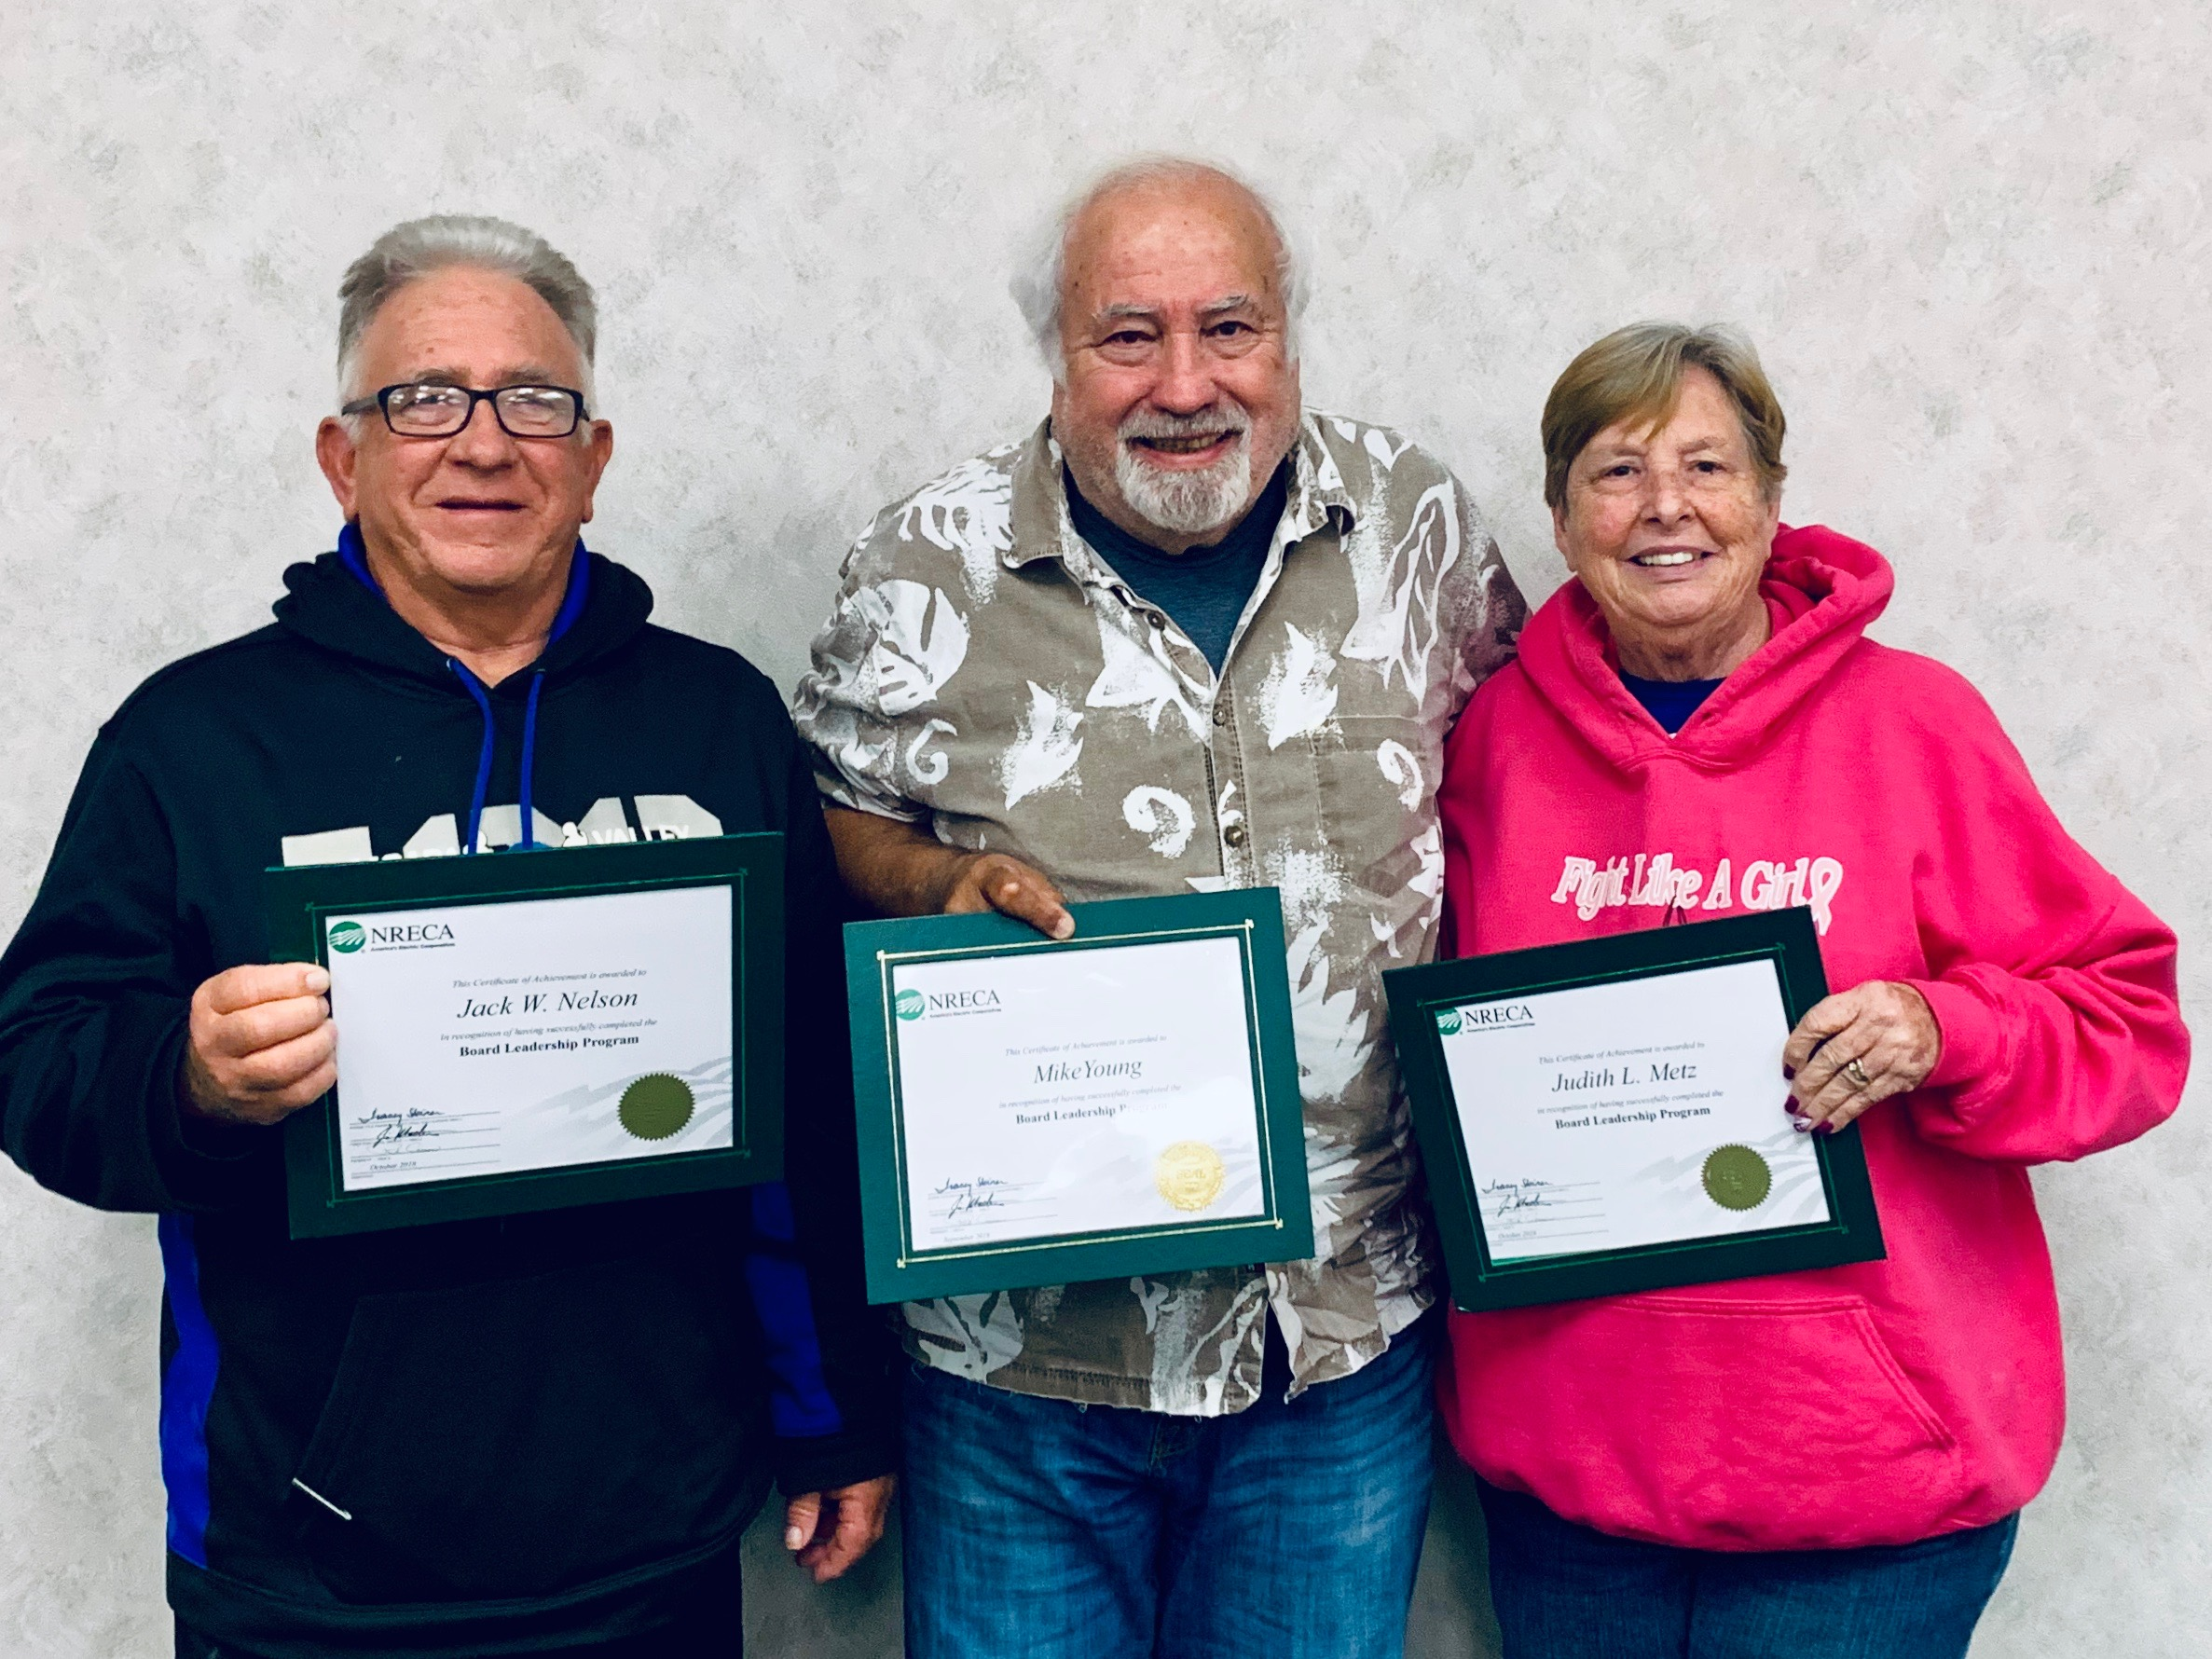 Board members received NRECA Board Leadership Certifications